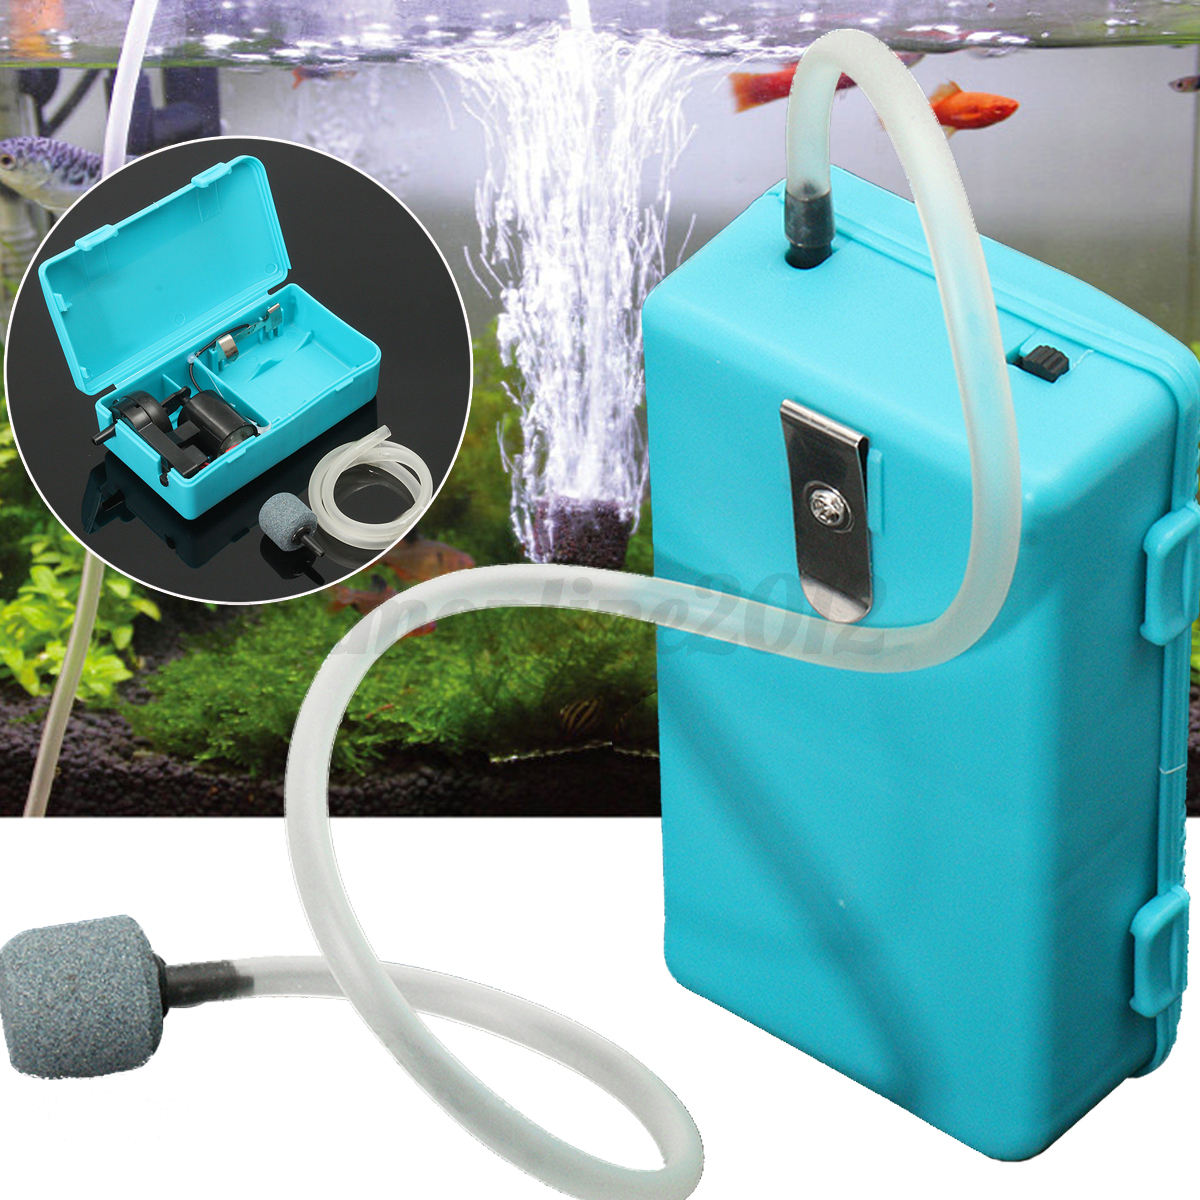 2 5w portable fishbowl oxygen pump battery operated for Air pump for fish tank